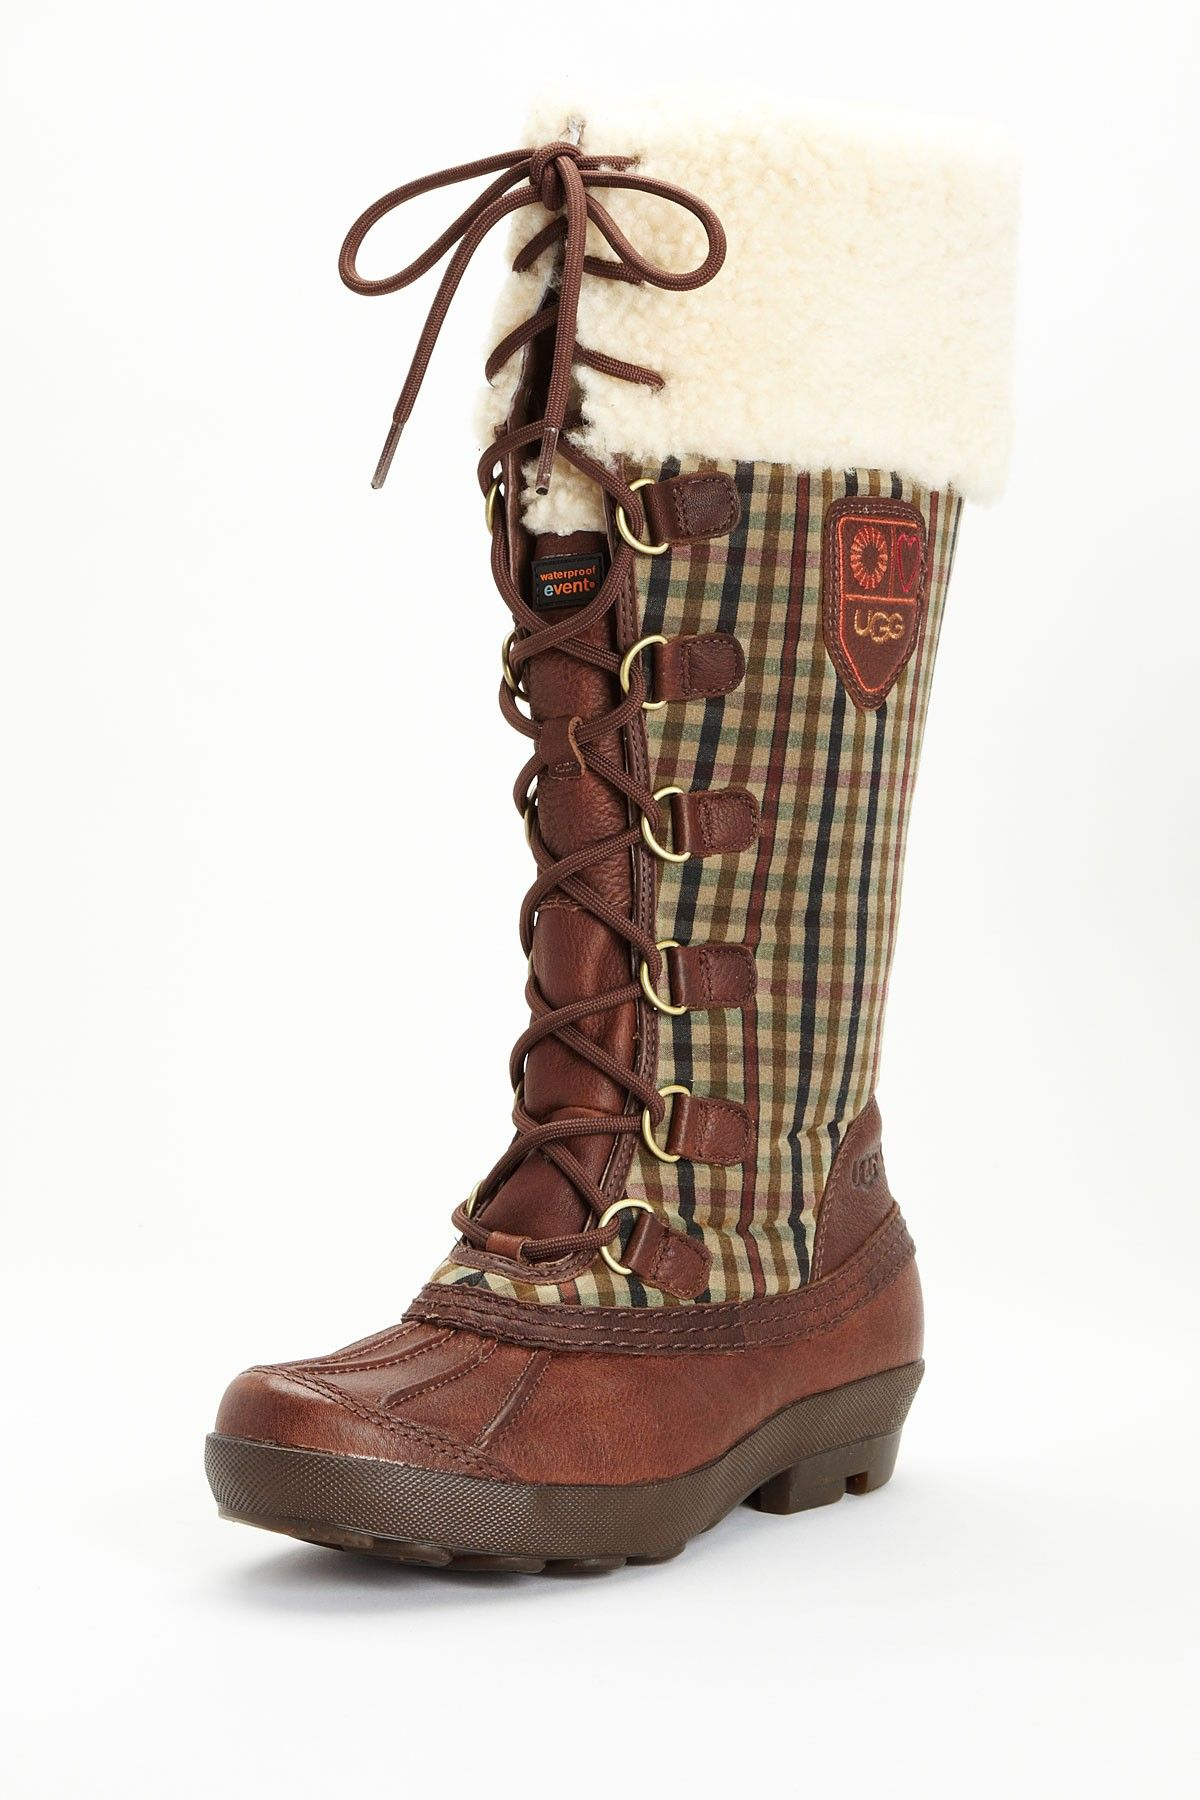 These Like Australia Edmonton Ugg Boot Fashion Up I Gingham Lace v6WgBnqqp